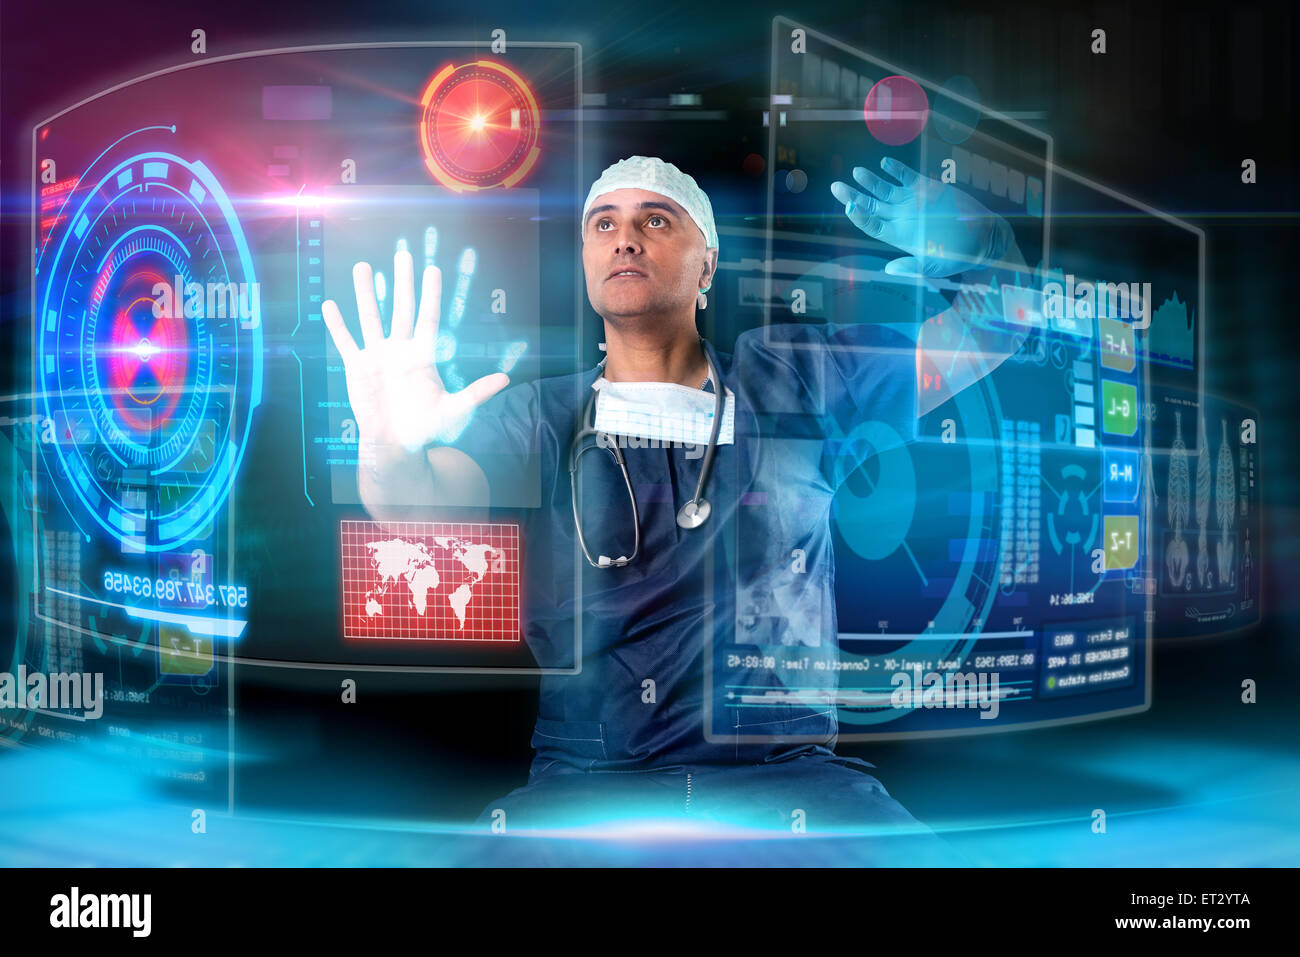 Doctor in uniform with digital  screens and keyboard - Stock Image